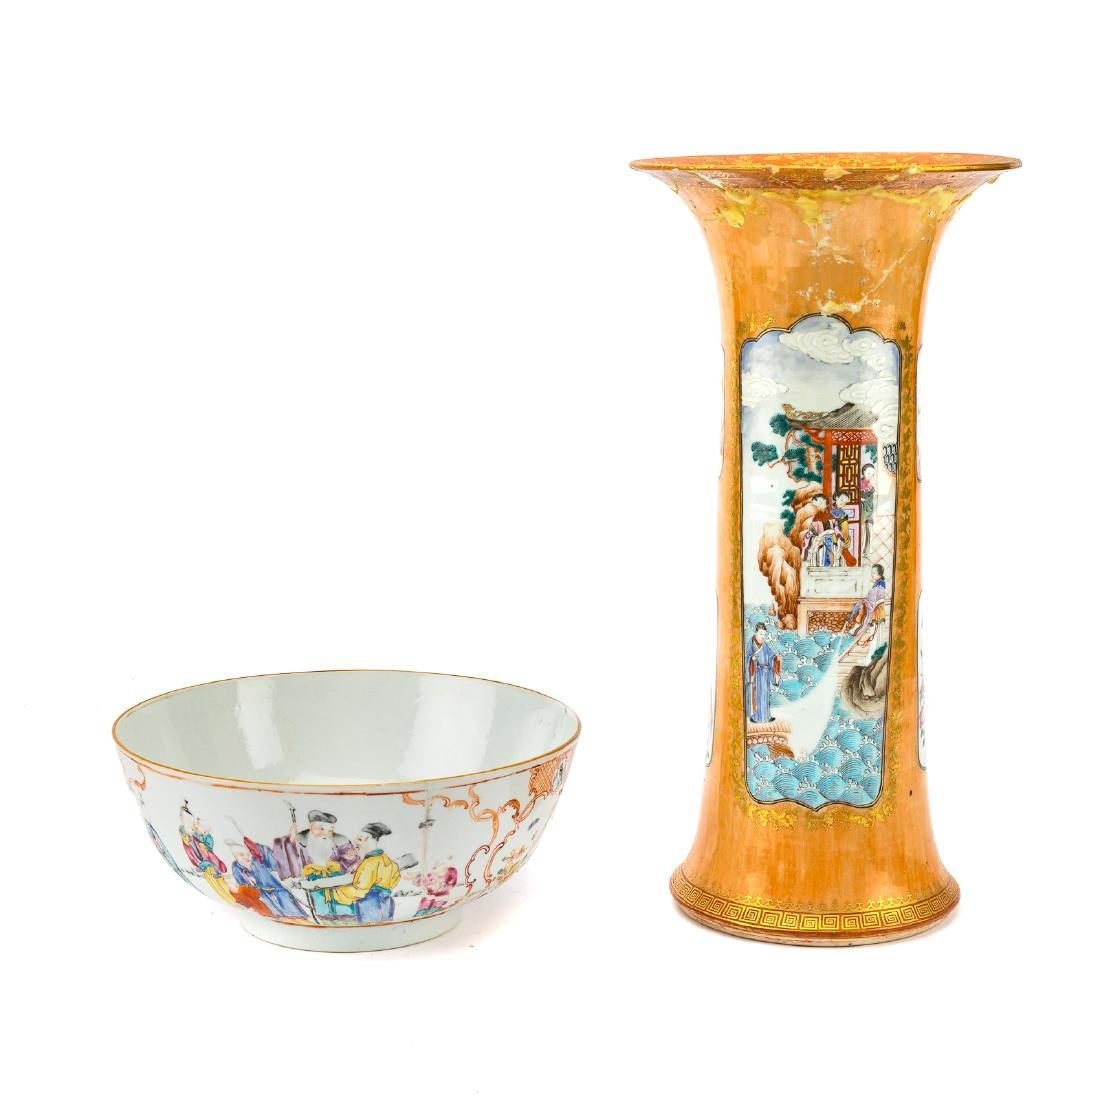 Chinese Export trumpet vase and bowl